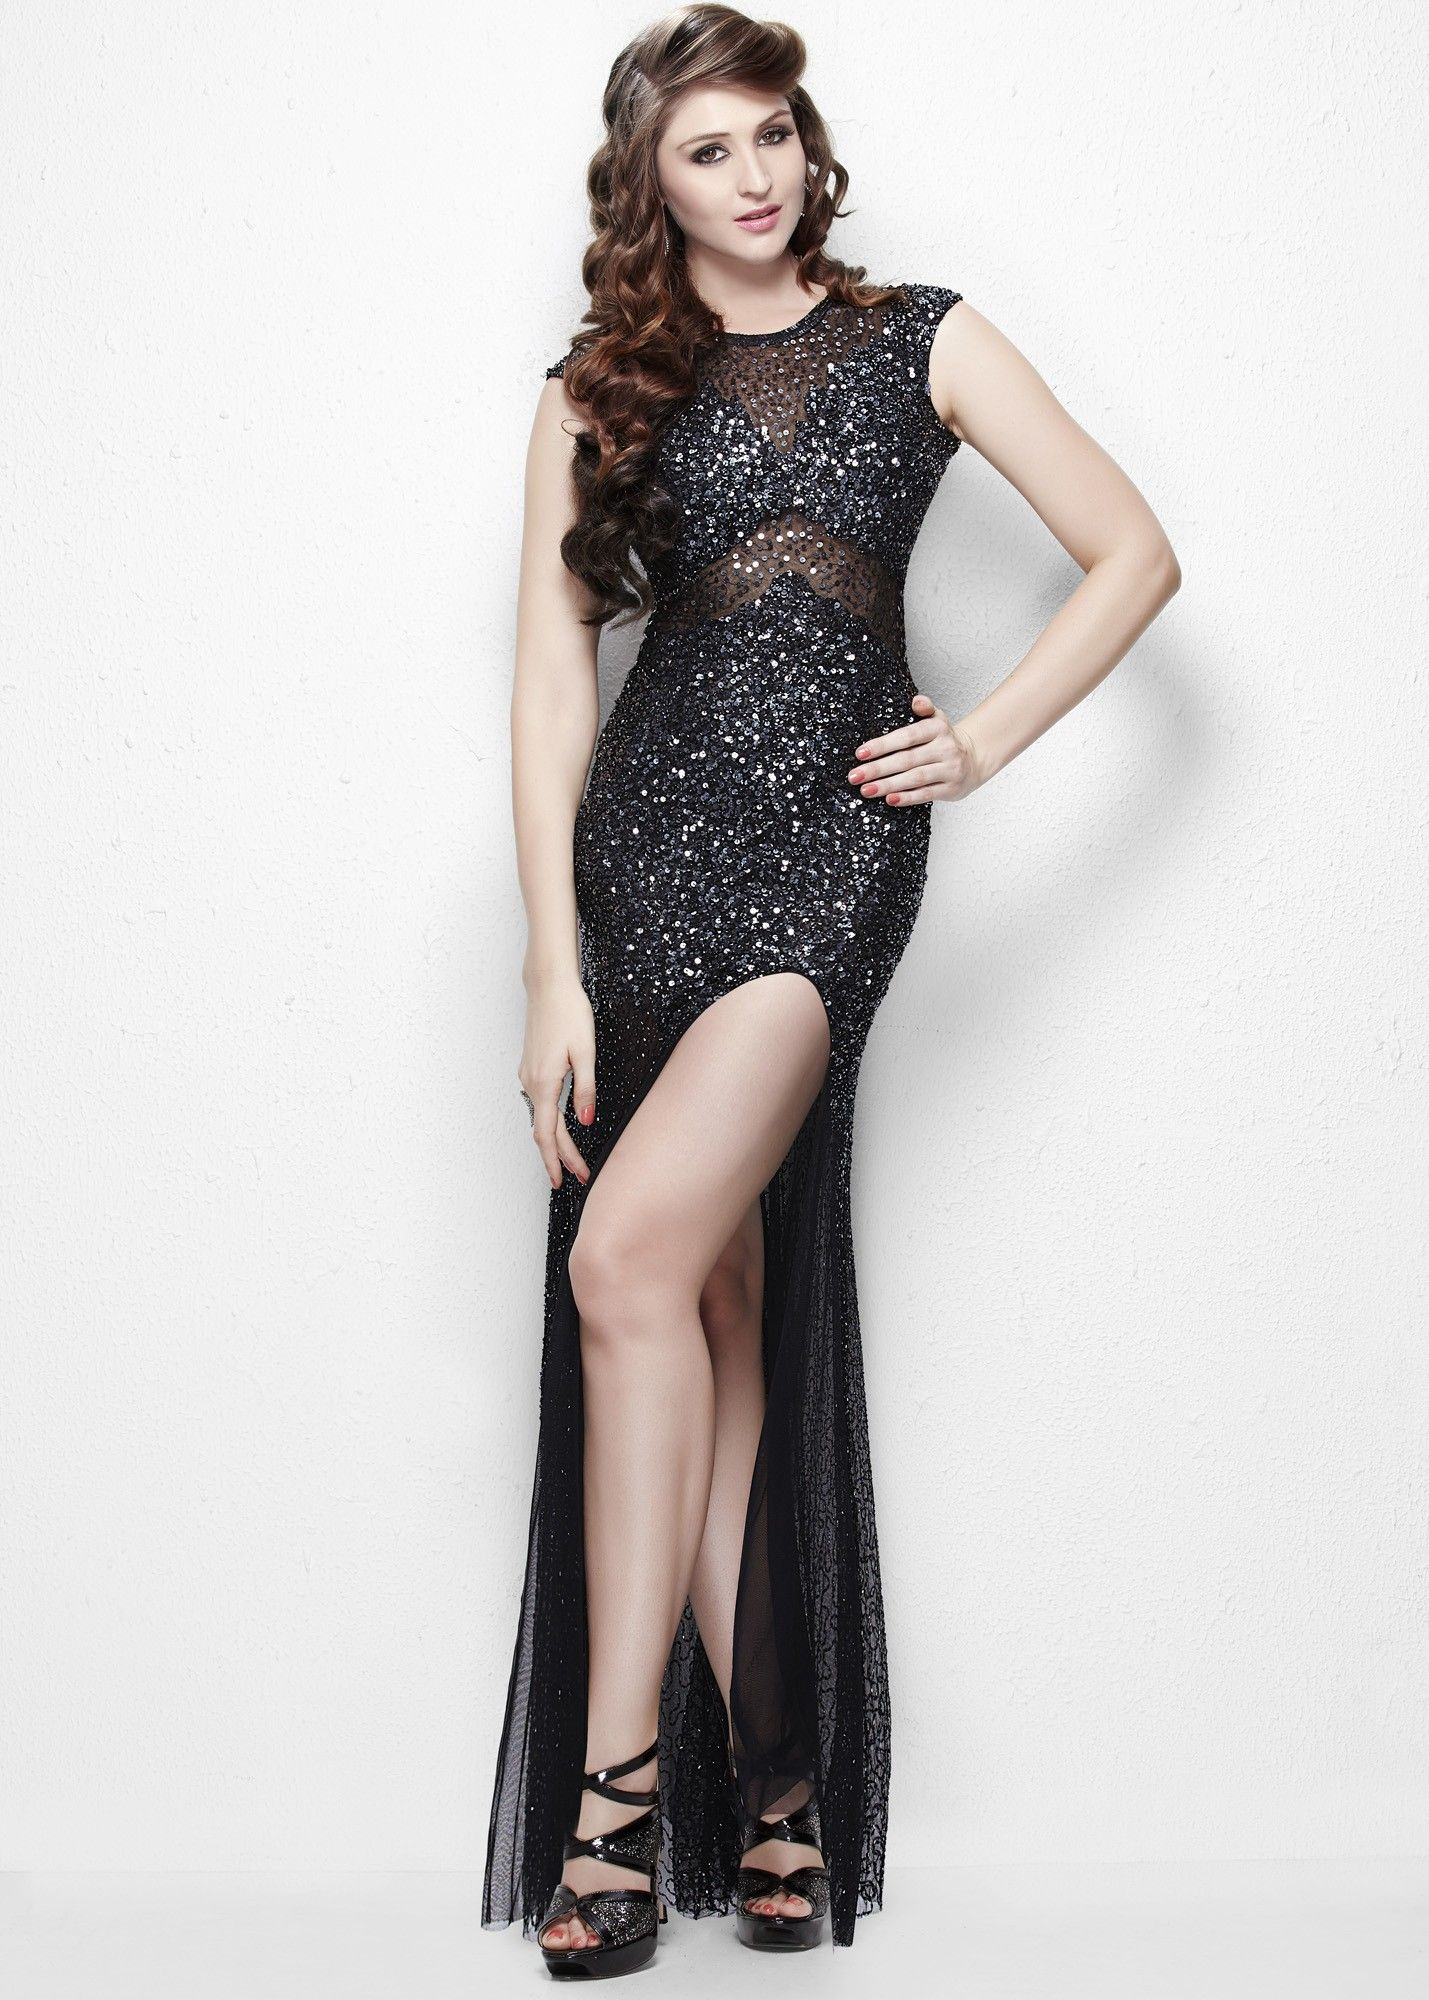 Primavera sparkly cap sleeve gown prom dress pinterest